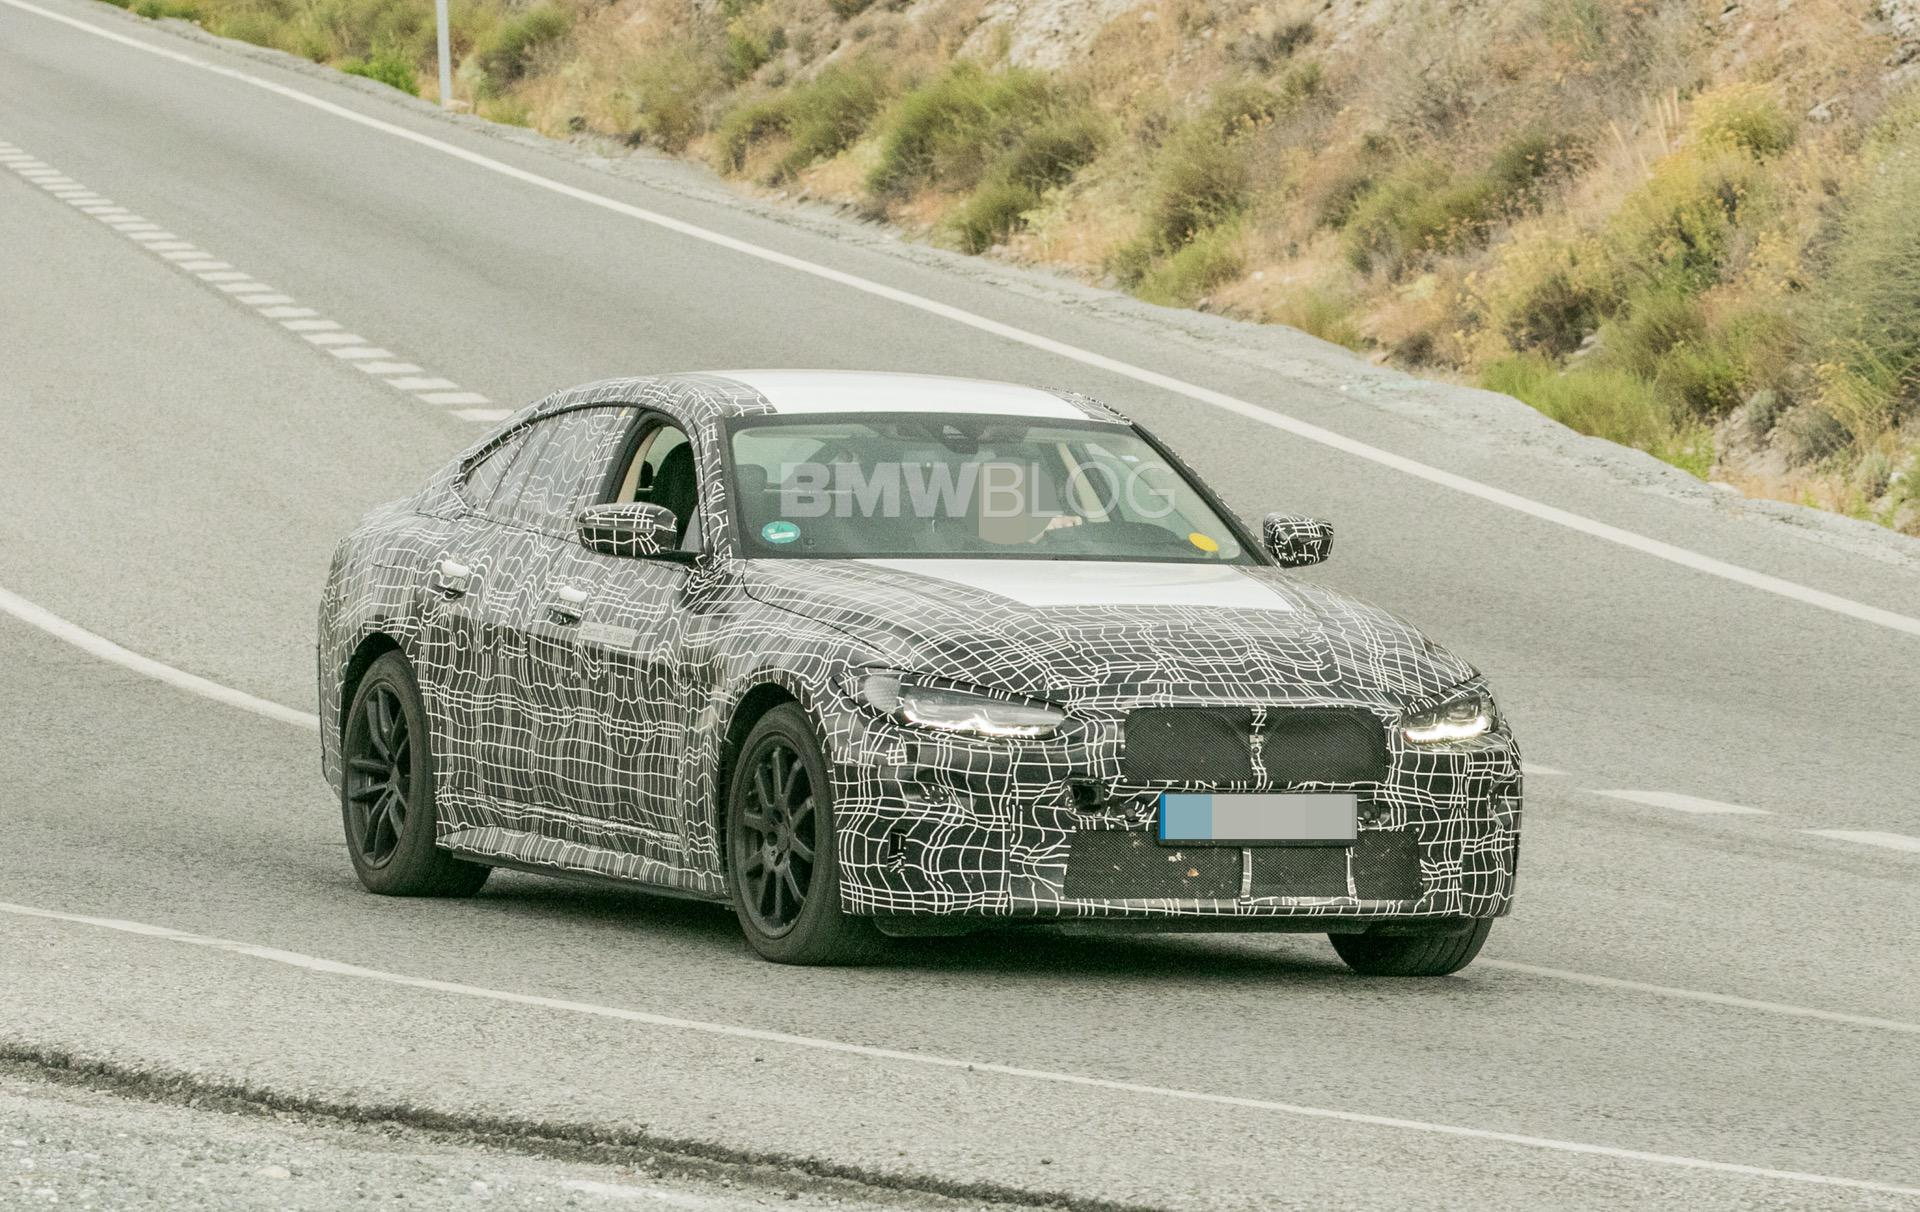 SPIED: Potential BMW iM440 Seen Testing in Heavy Camouflage